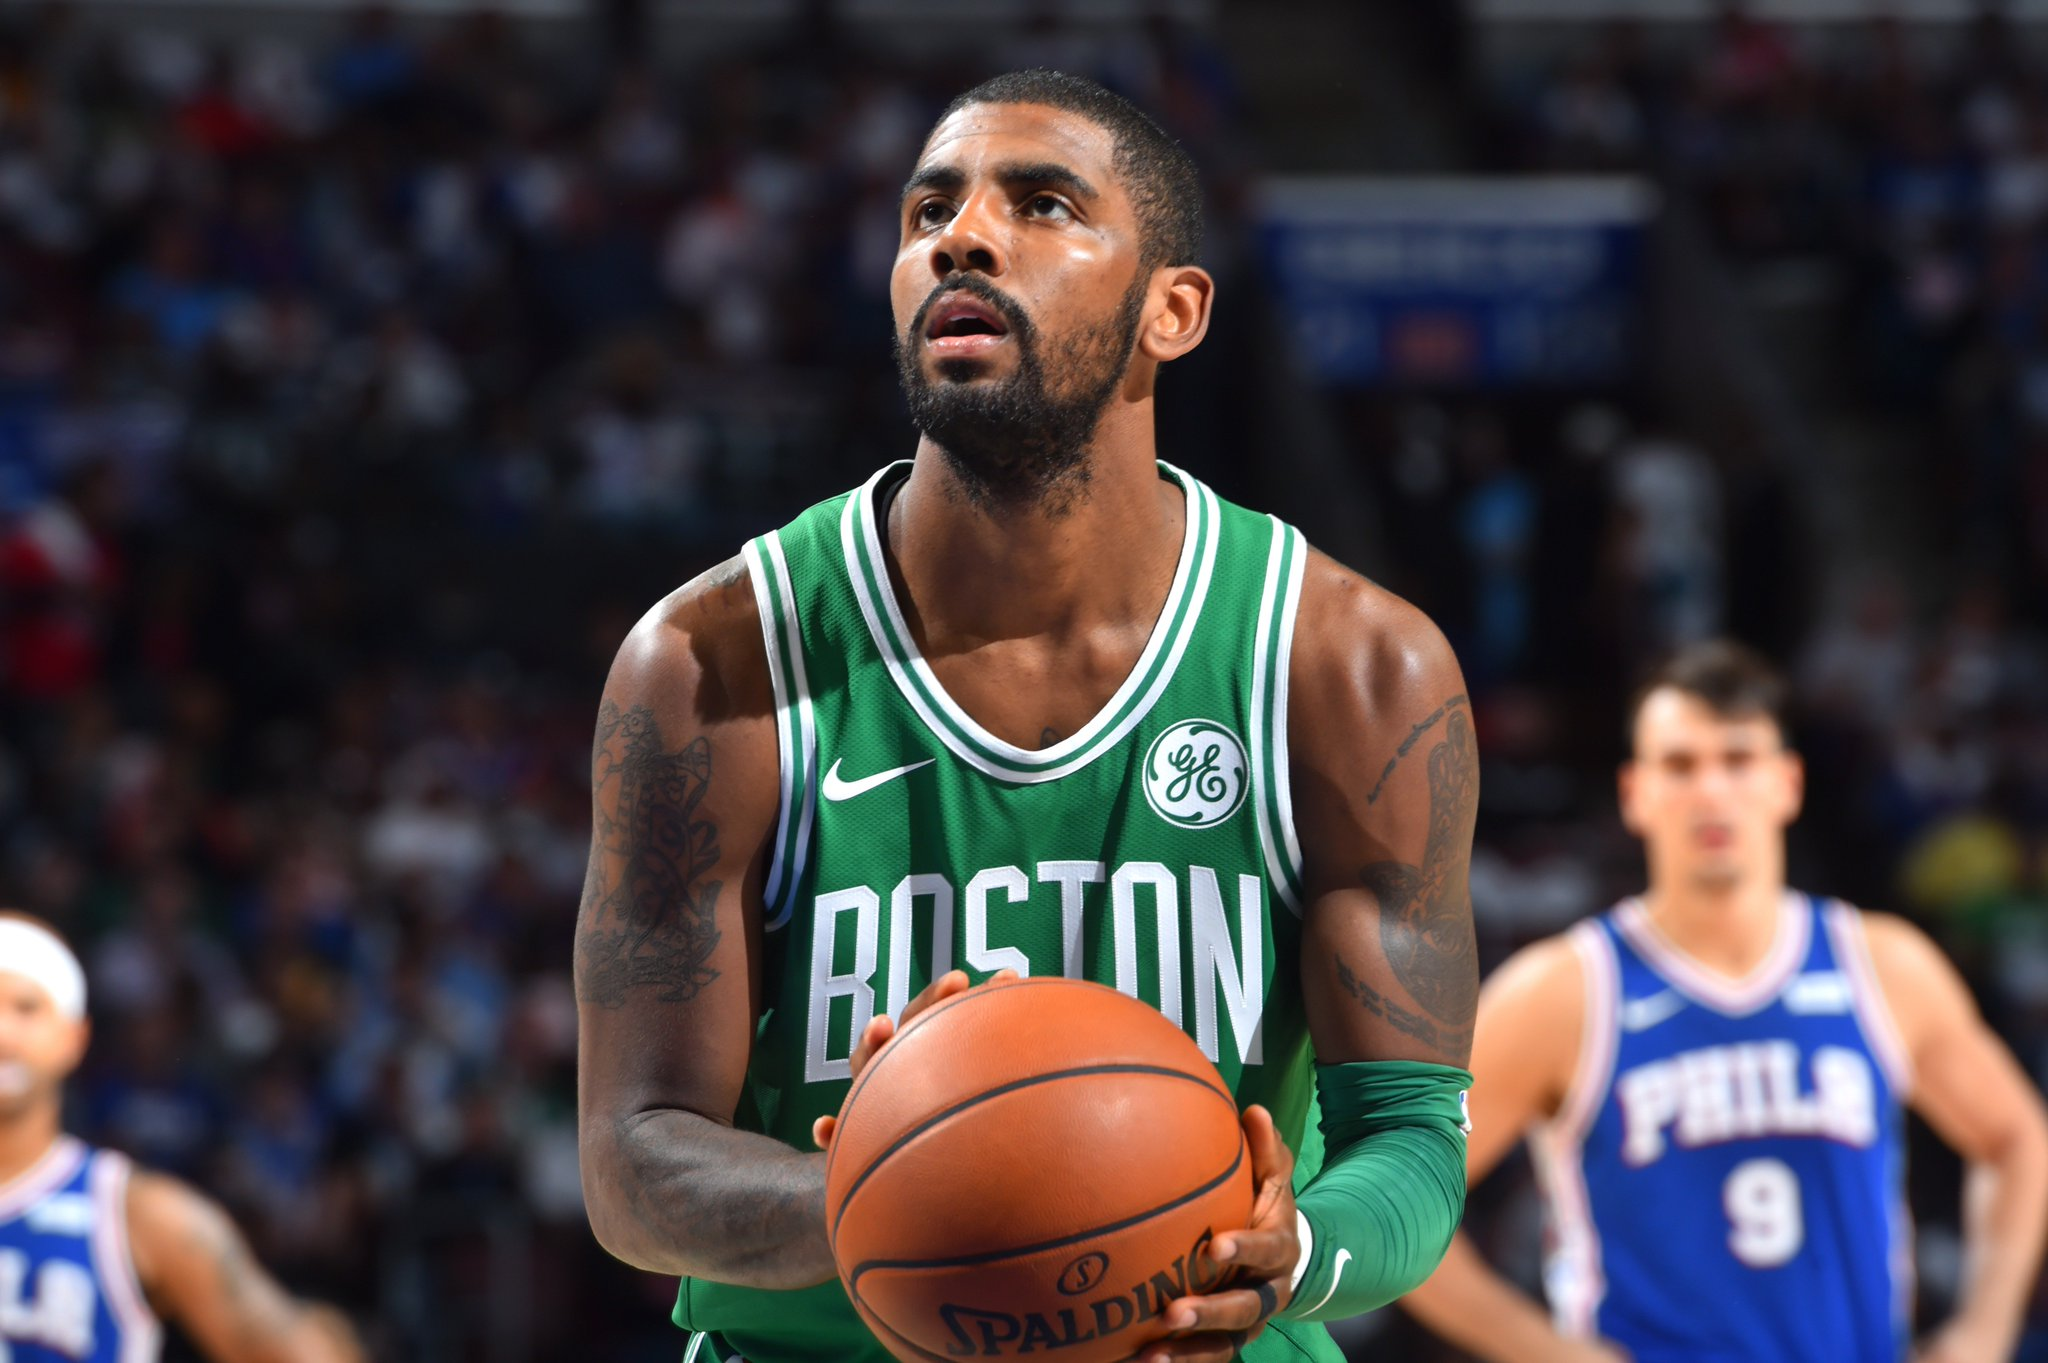 "Kyrie Irving on if he regrets making profane comments to fan: 'Hell no"" https://t.co/kEkLf0c4yR https://t.co/swd0waLDG5"